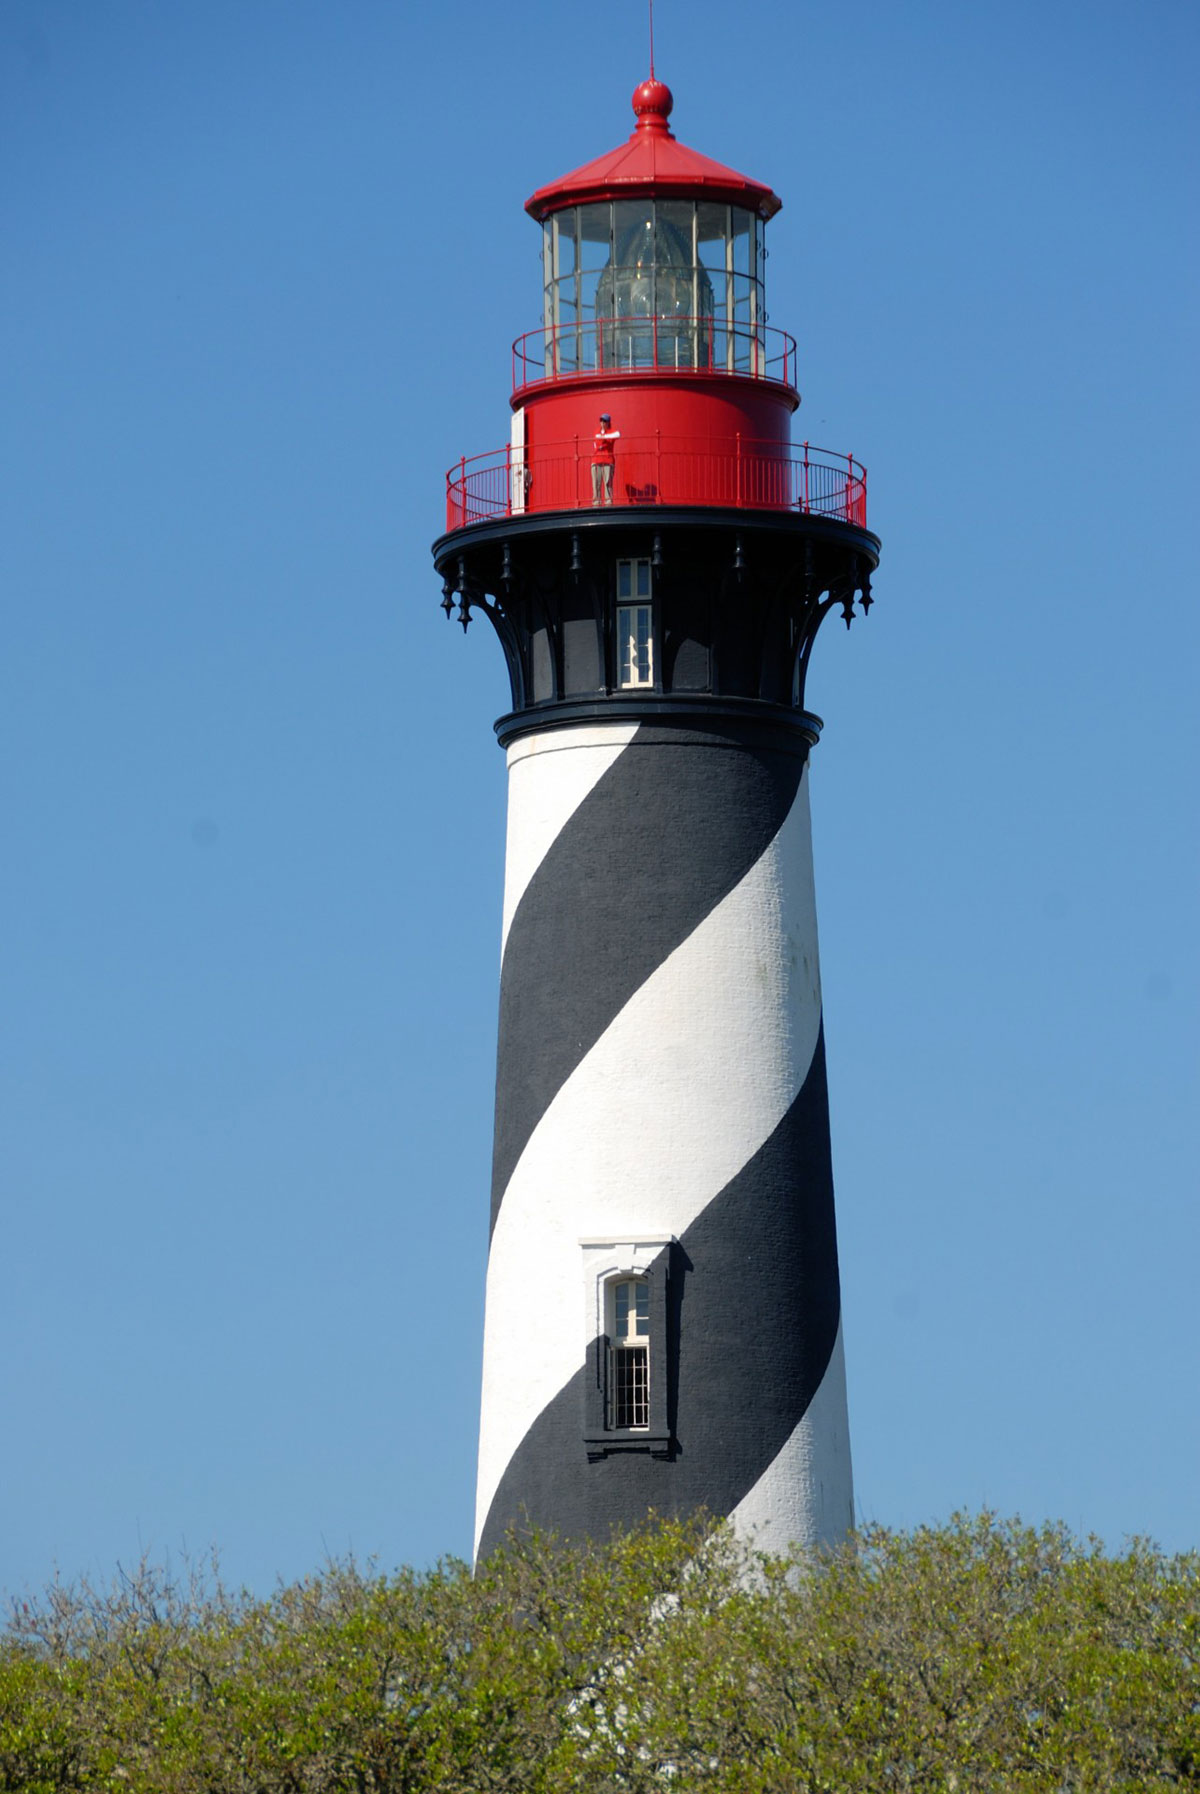 St Augustine Lighthouse Florida Tnemec Fluoronar Lumiflon FEVE Resin